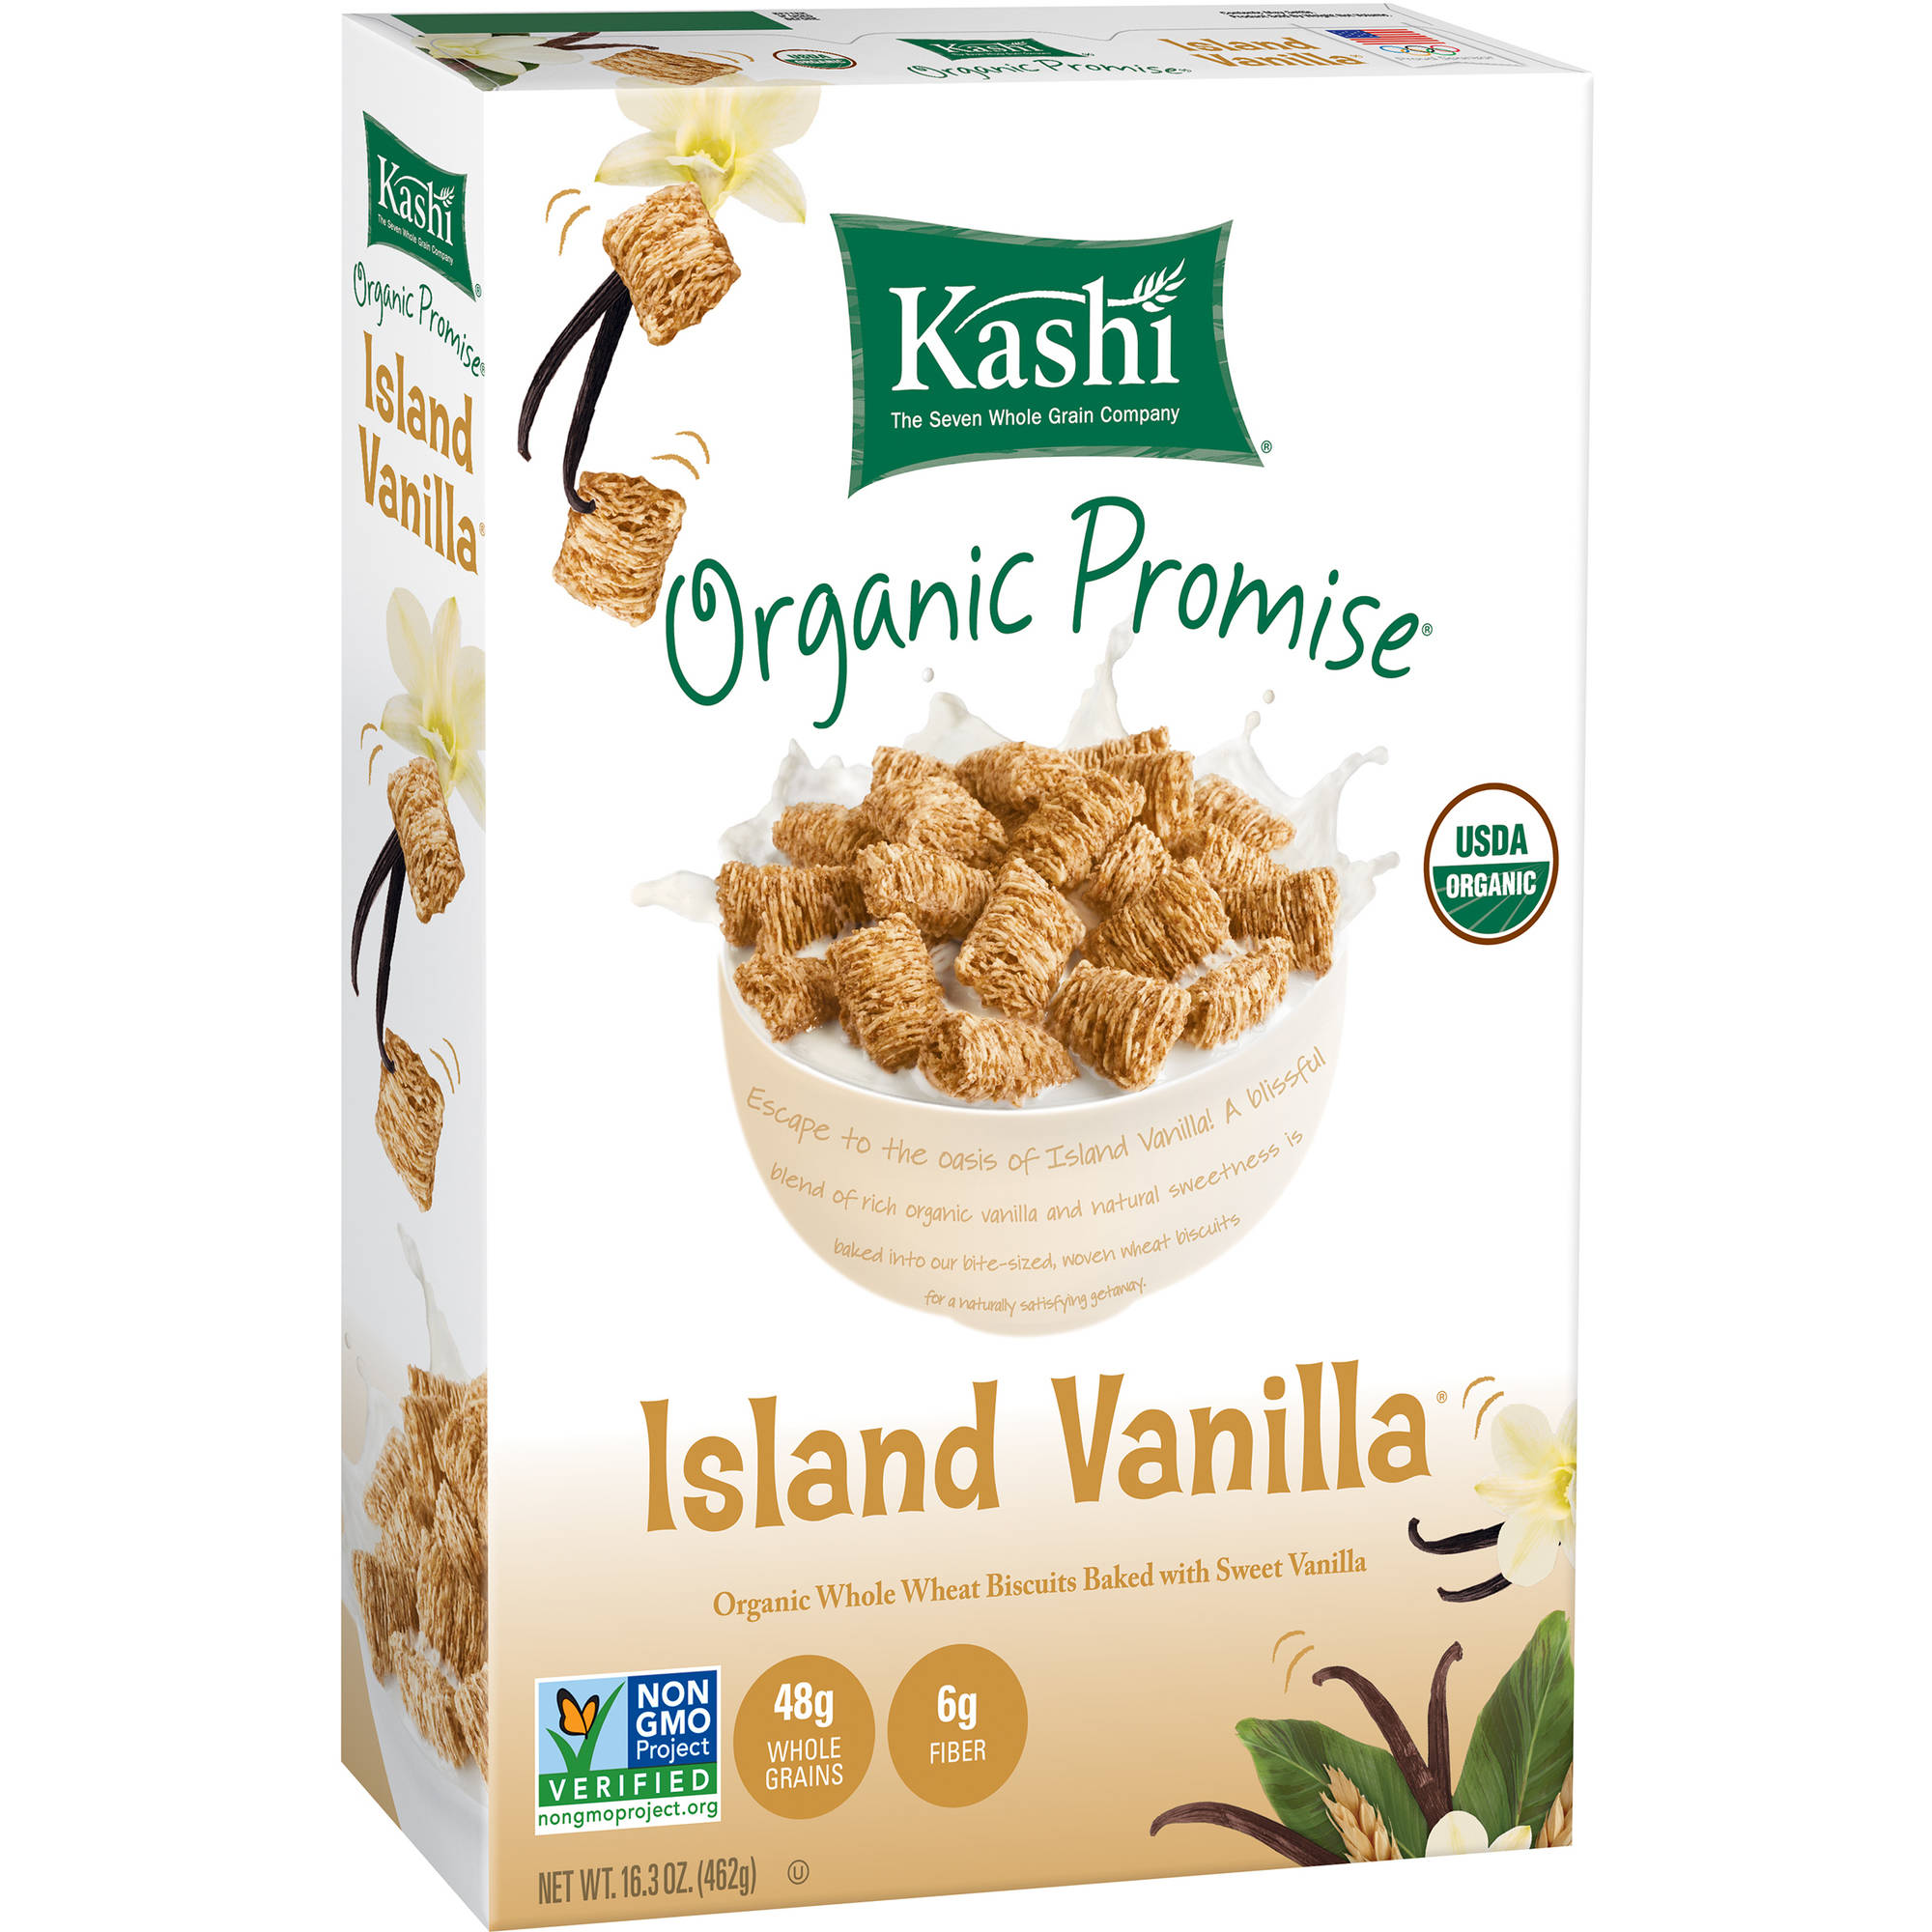 Kashi Island Vanilla Whole Wheat Biscuits Cereal, 16.3 oz